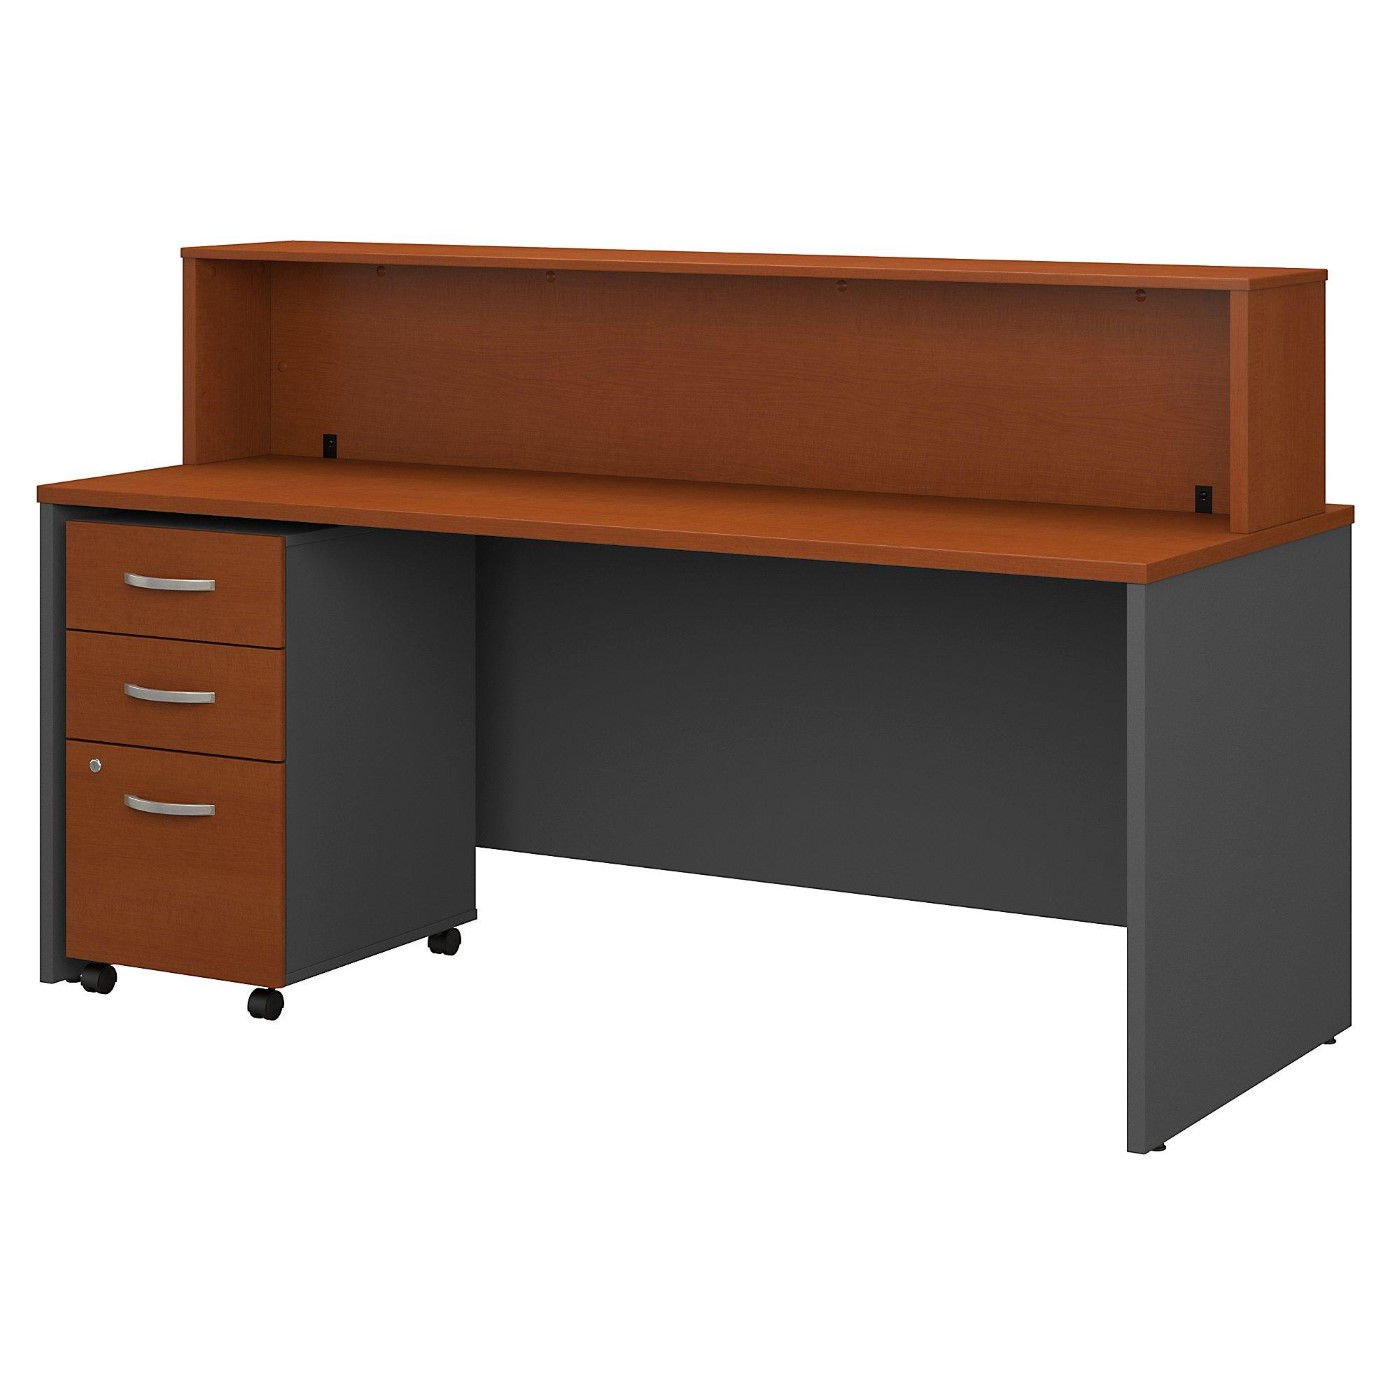 BUSH BUSINESS FURNITURE SERIES C 72W X 30D RECEPTION DESK WITH MOBILE FILE CABINET. FREE SHIPPING.